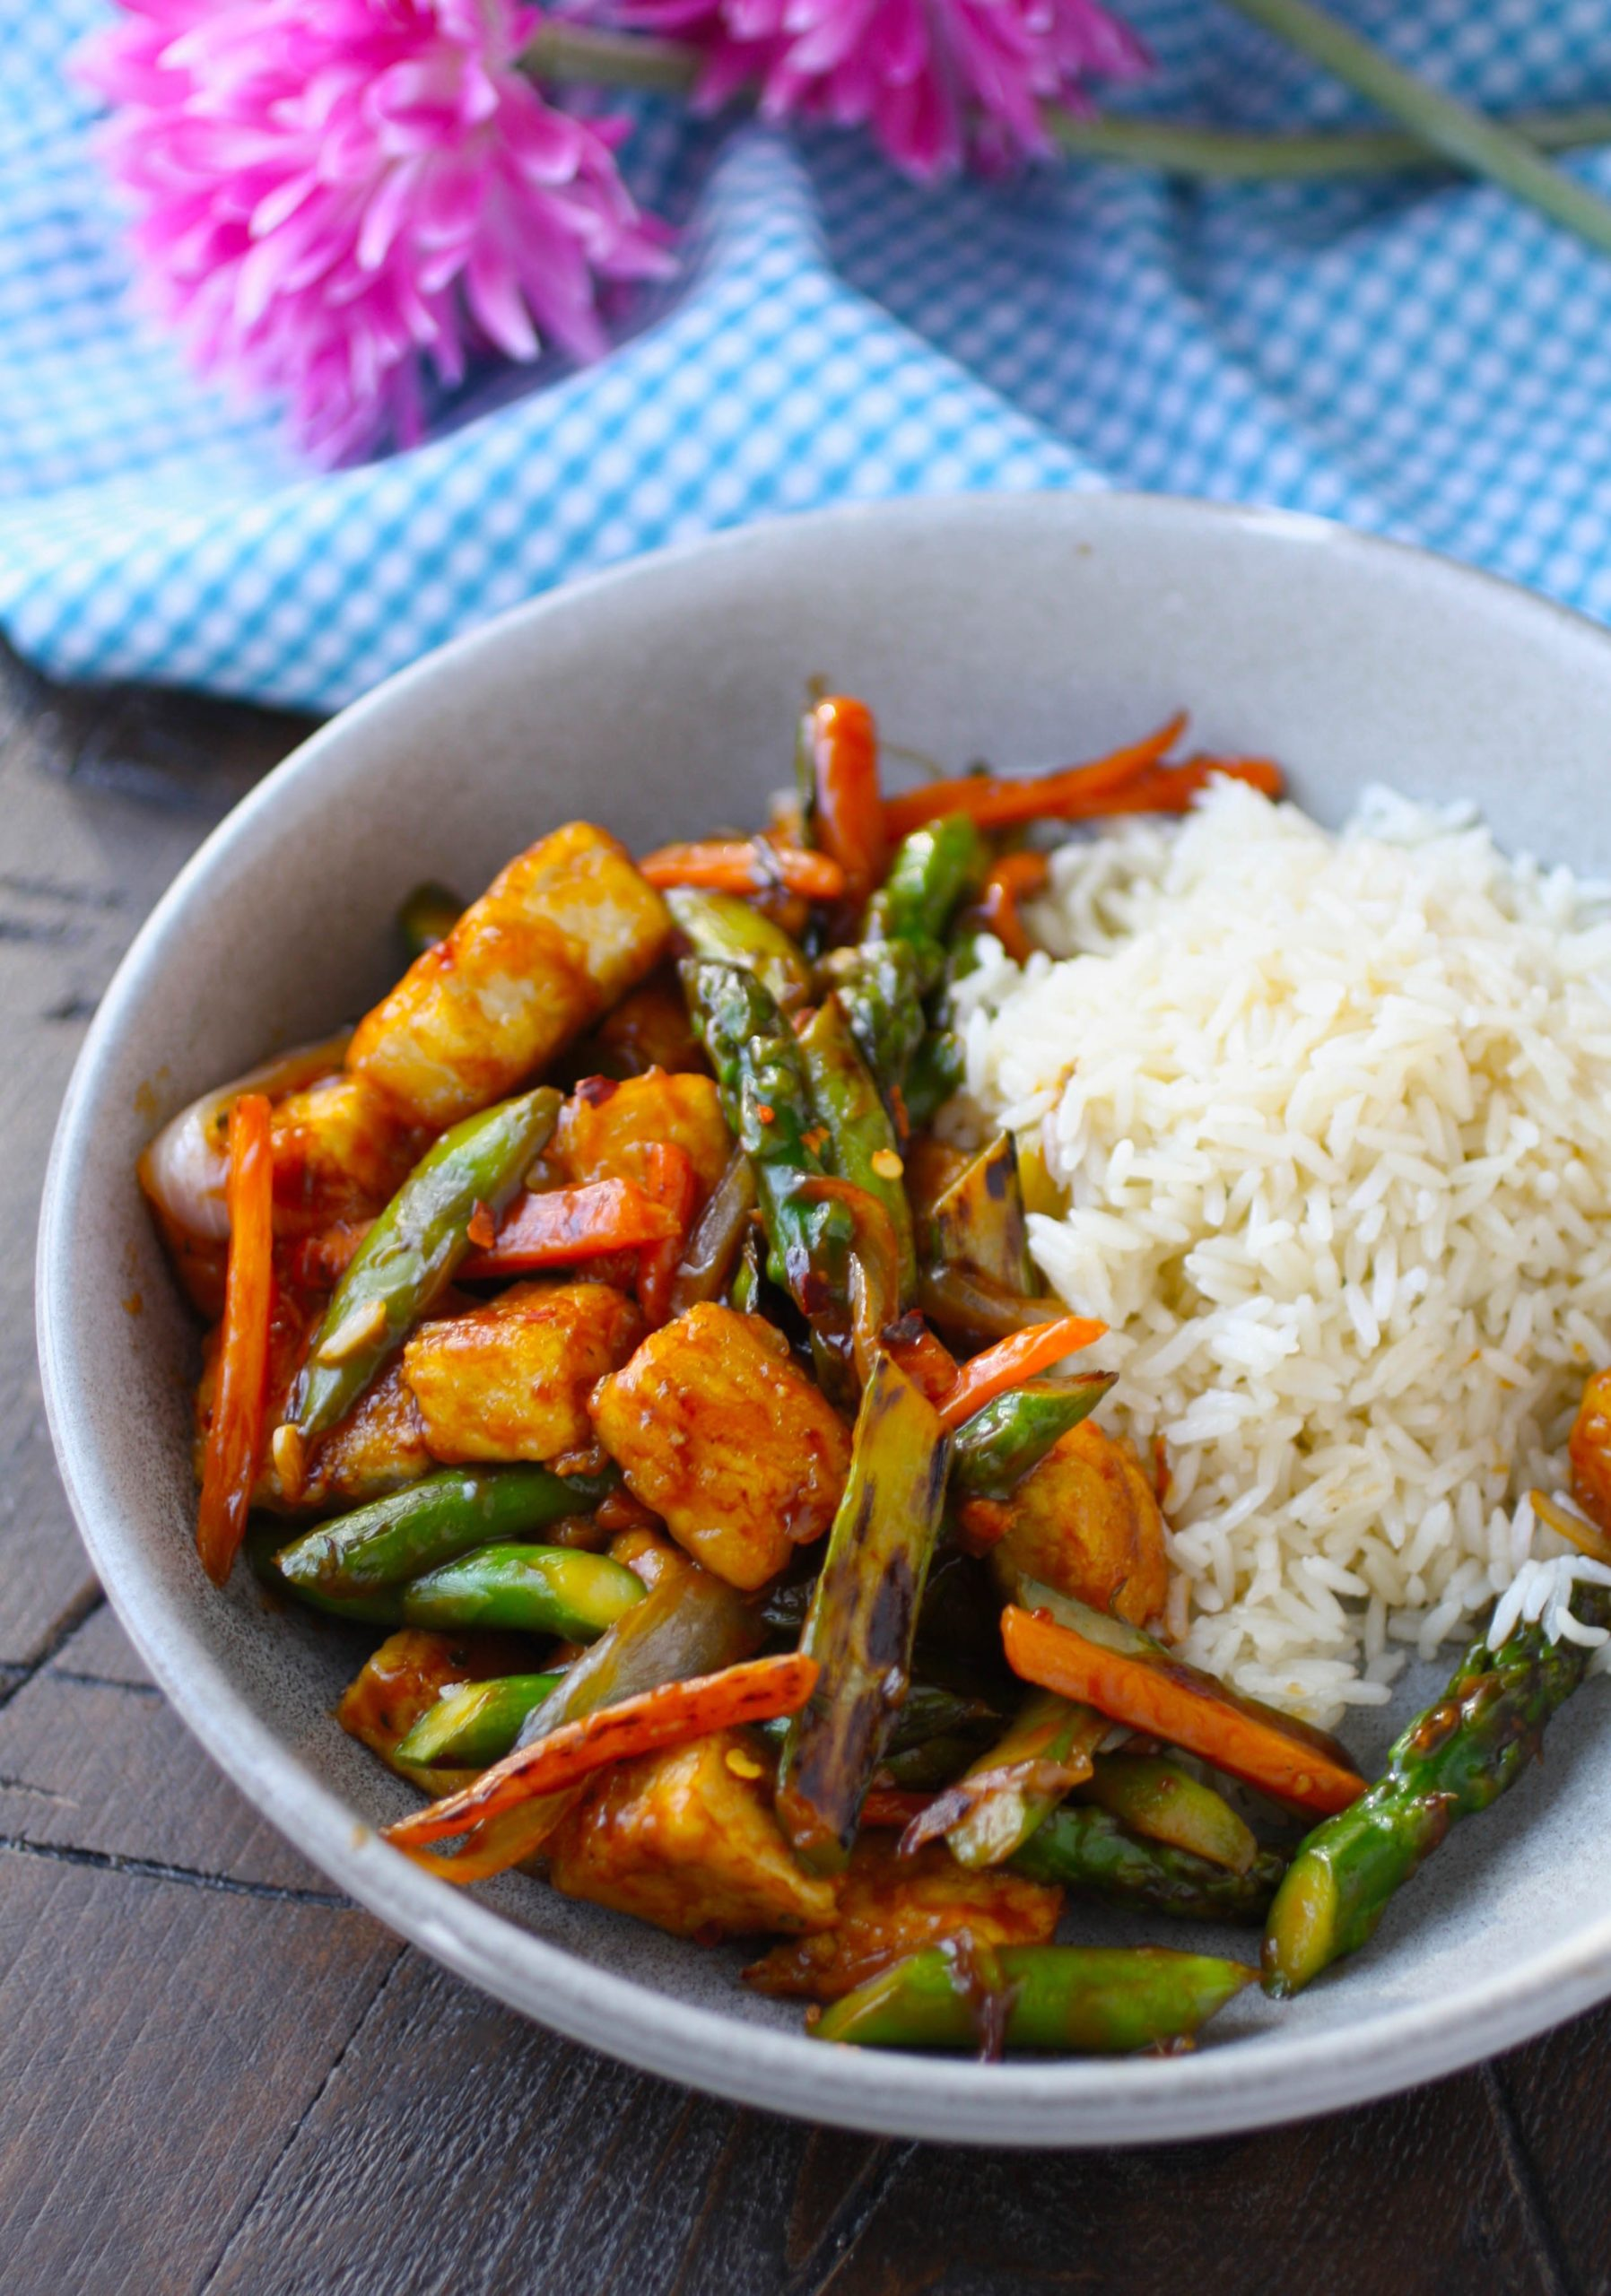 Stir-Fried Tofu and Vegetables is filling, colorful, and flavorful!